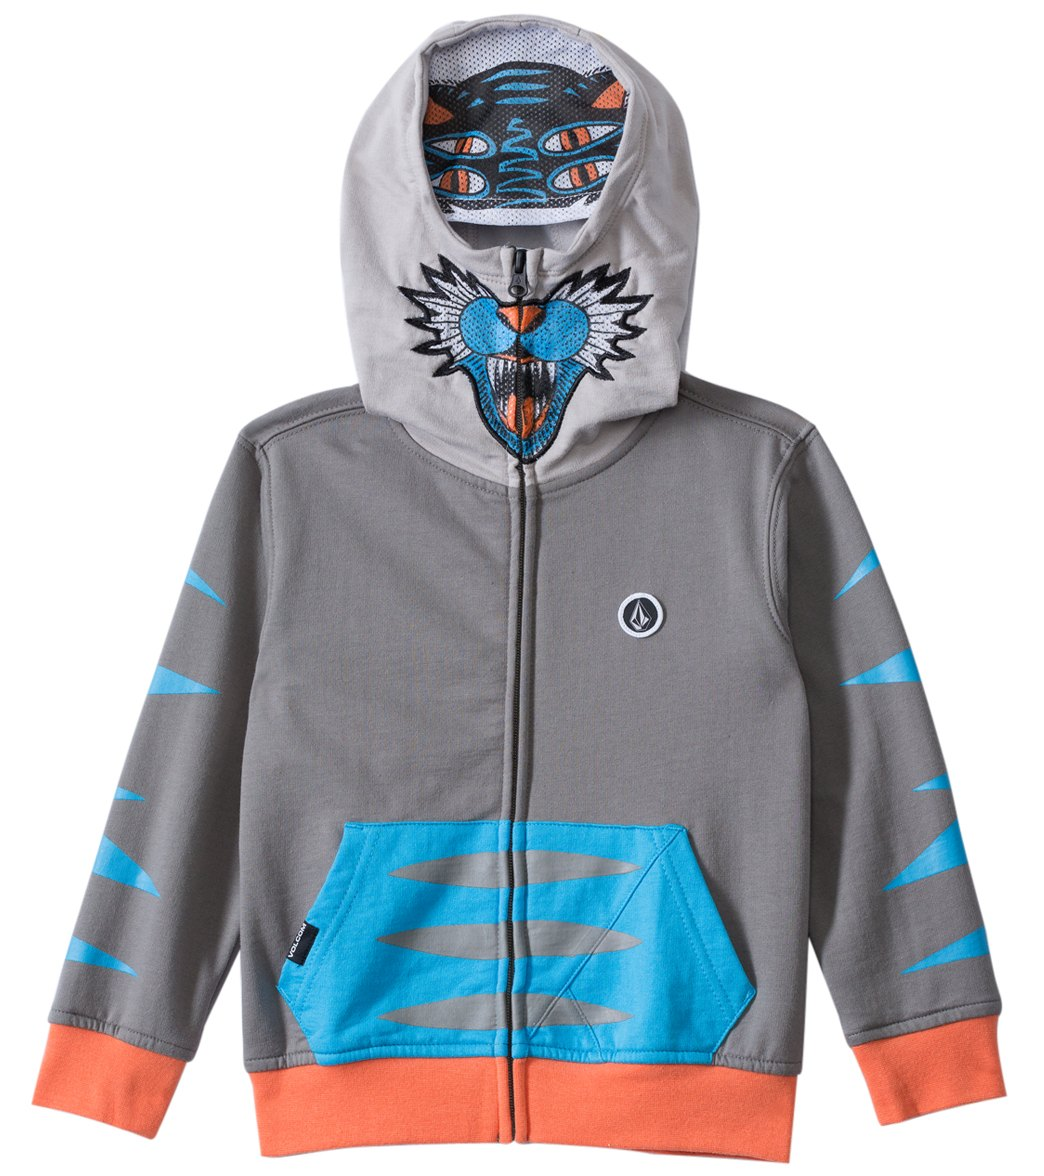 17b43746c Volcom Boys' Wild Life Full Zip Up Hoodie (2T-4T) at SwimOutlet.com - Free  Shipping